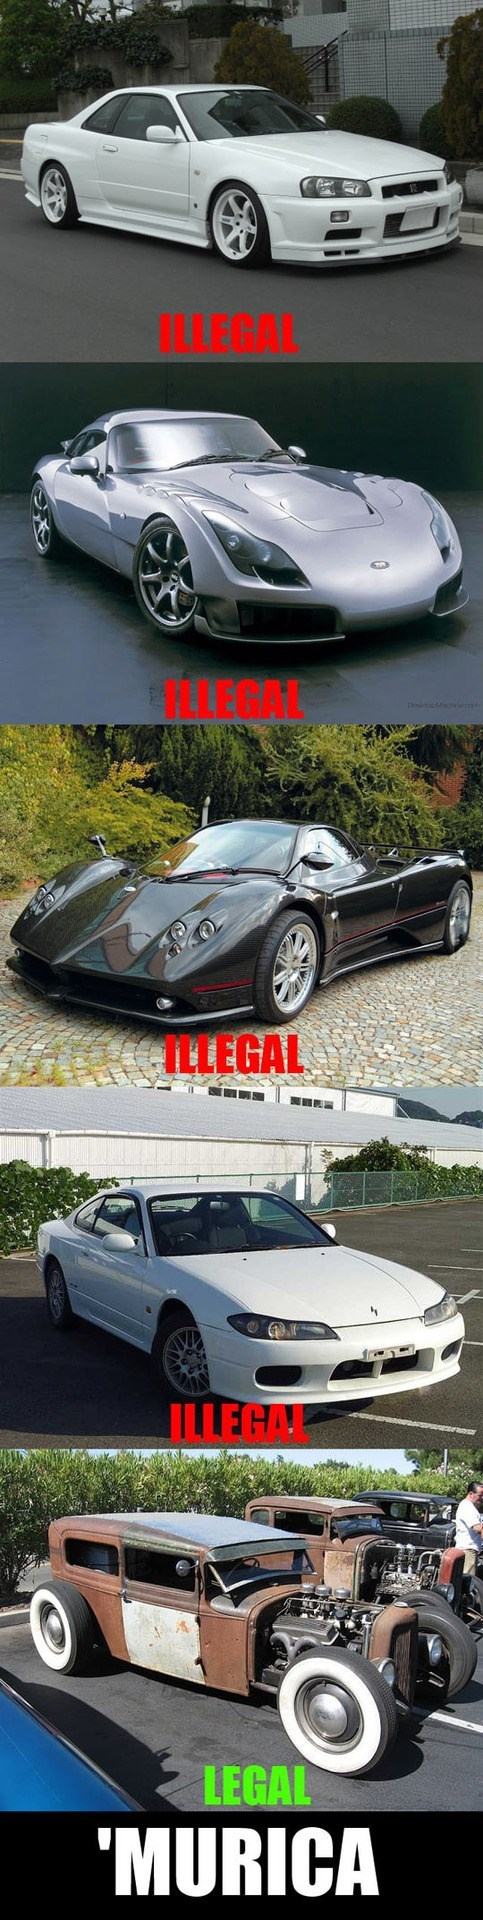 illegal legal usa murica - 7963939584